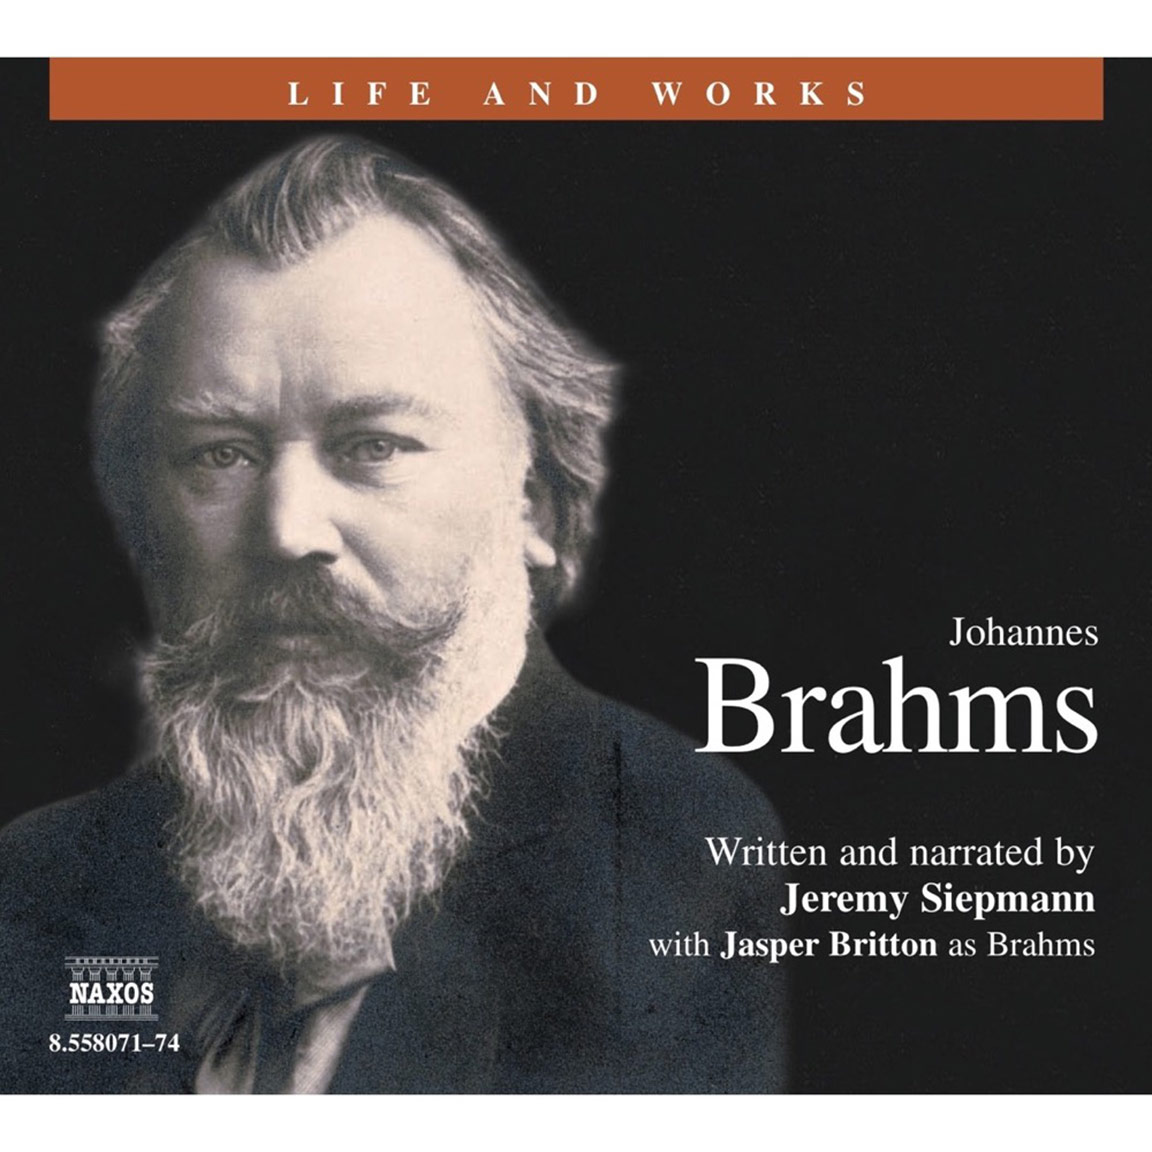 """the history of the classical music and the biography of johann sebastian bach and fran liszt Johann sebastian bach is widely regarded as one of the greatest composers in the history of """"bach, johann sebastian"""" in grove music online liszt, franz."""